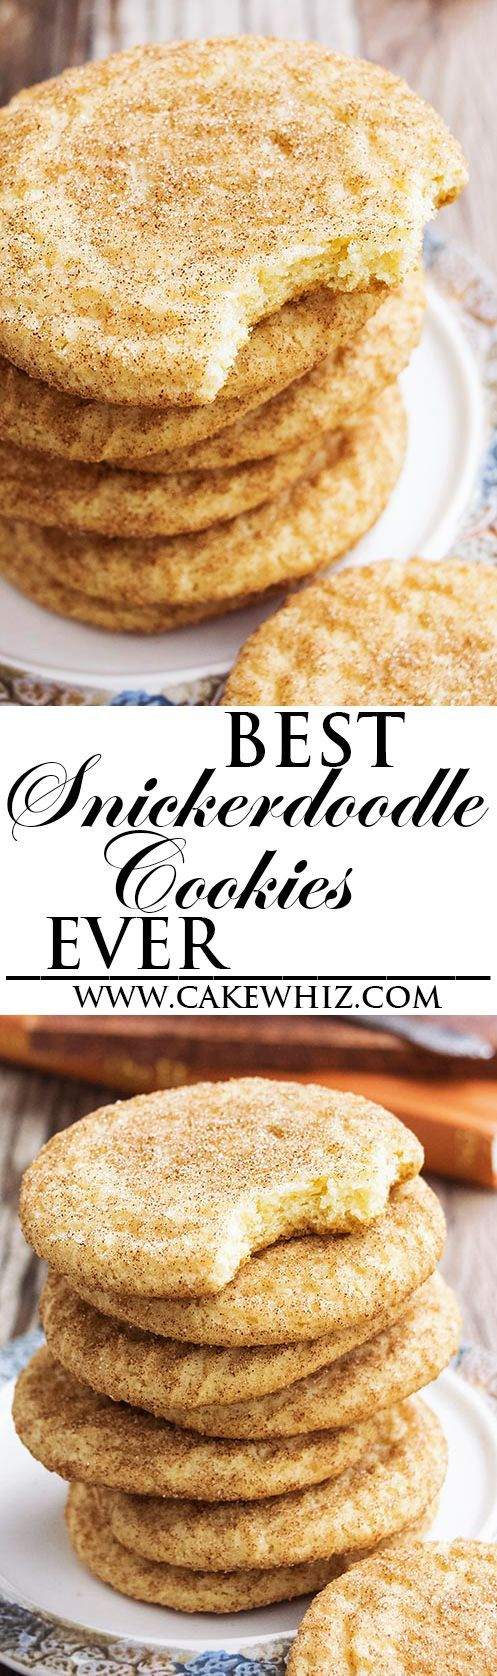 This classic SNICKERDOODLES recipe yields soft and chewy cookies with crispy sugary tops. These old fashioned snickerdoodle cookies are packed with cinnamon flavors and are very easy to make.